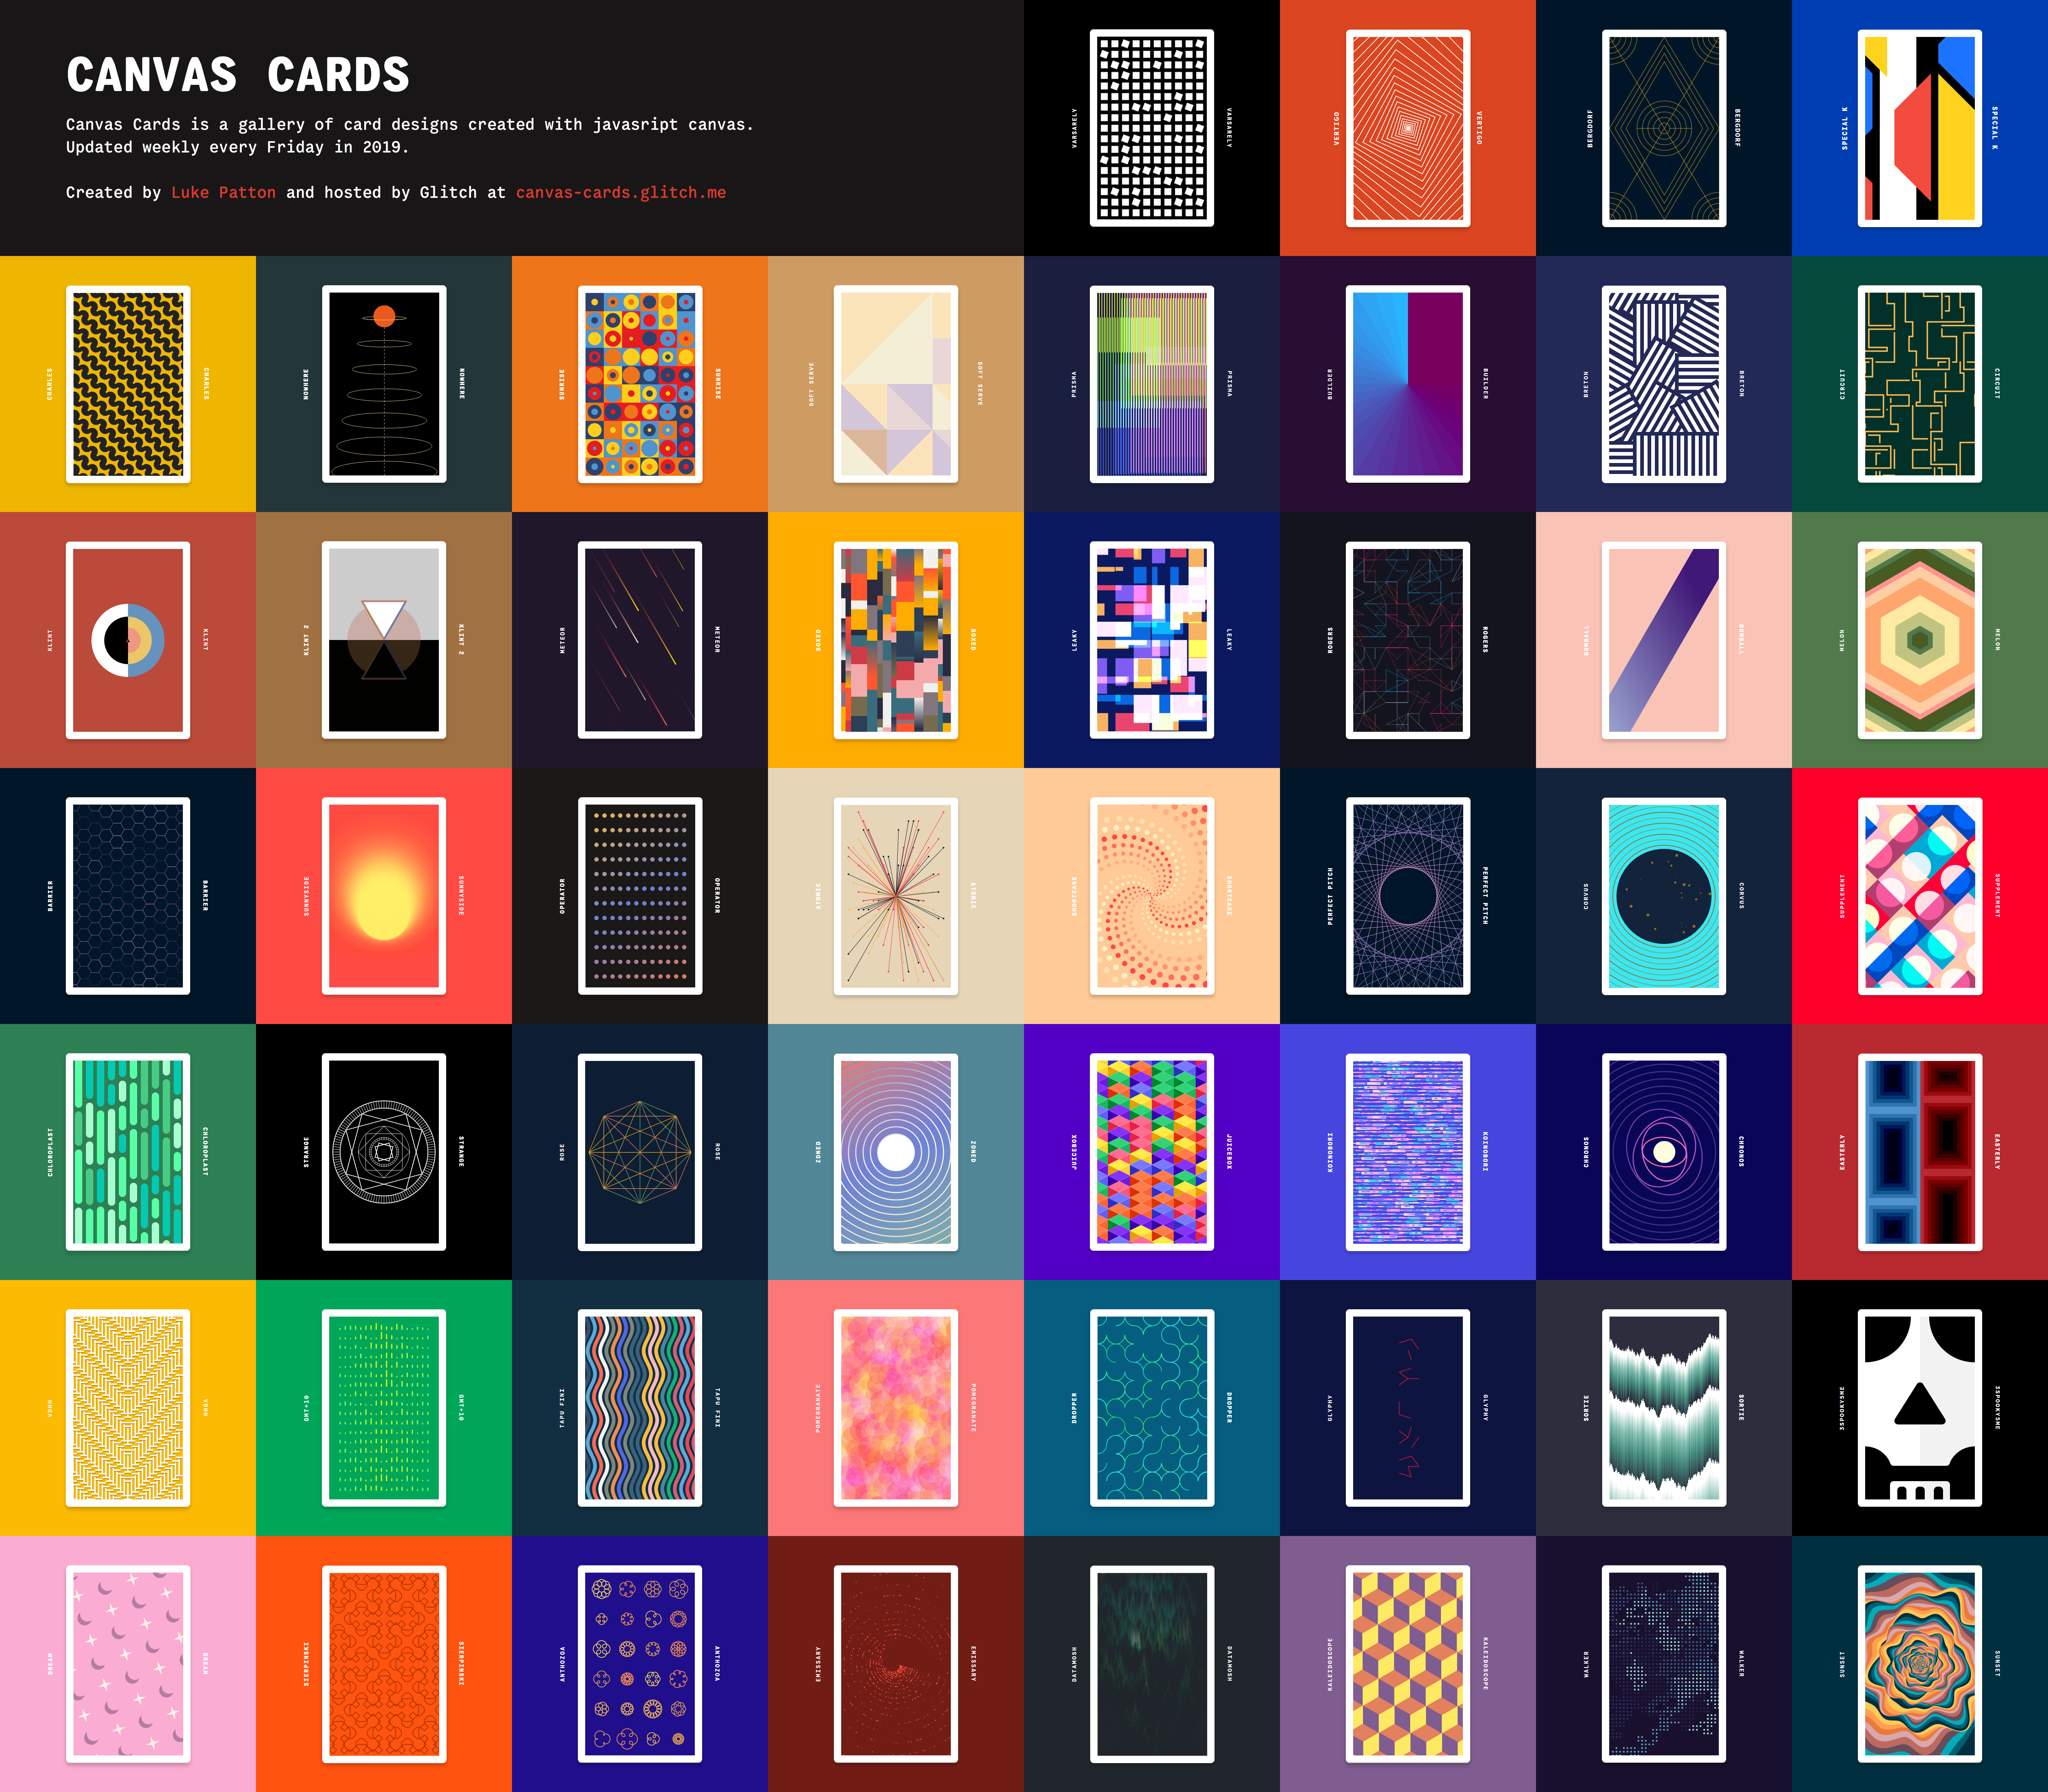 The completed Canvas Cards output